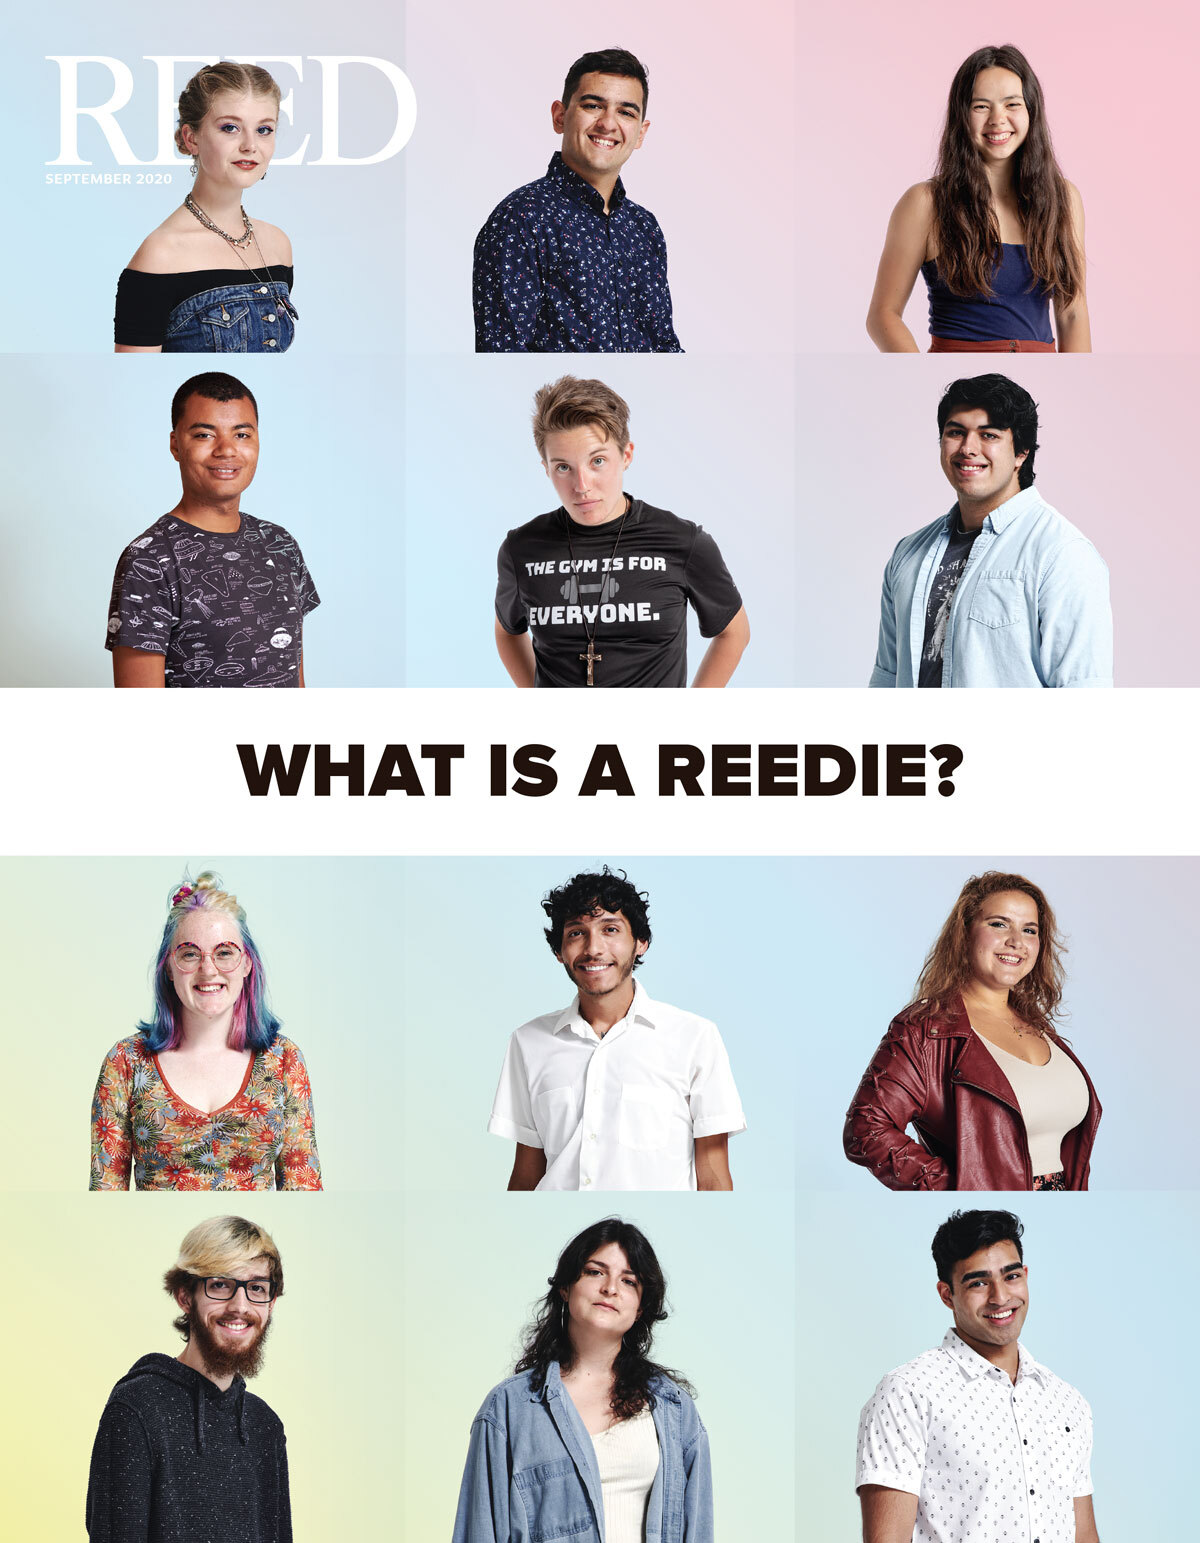 September 2020 Reed magazine cover showing twelve images of Reed students and asks What is a Reedie?